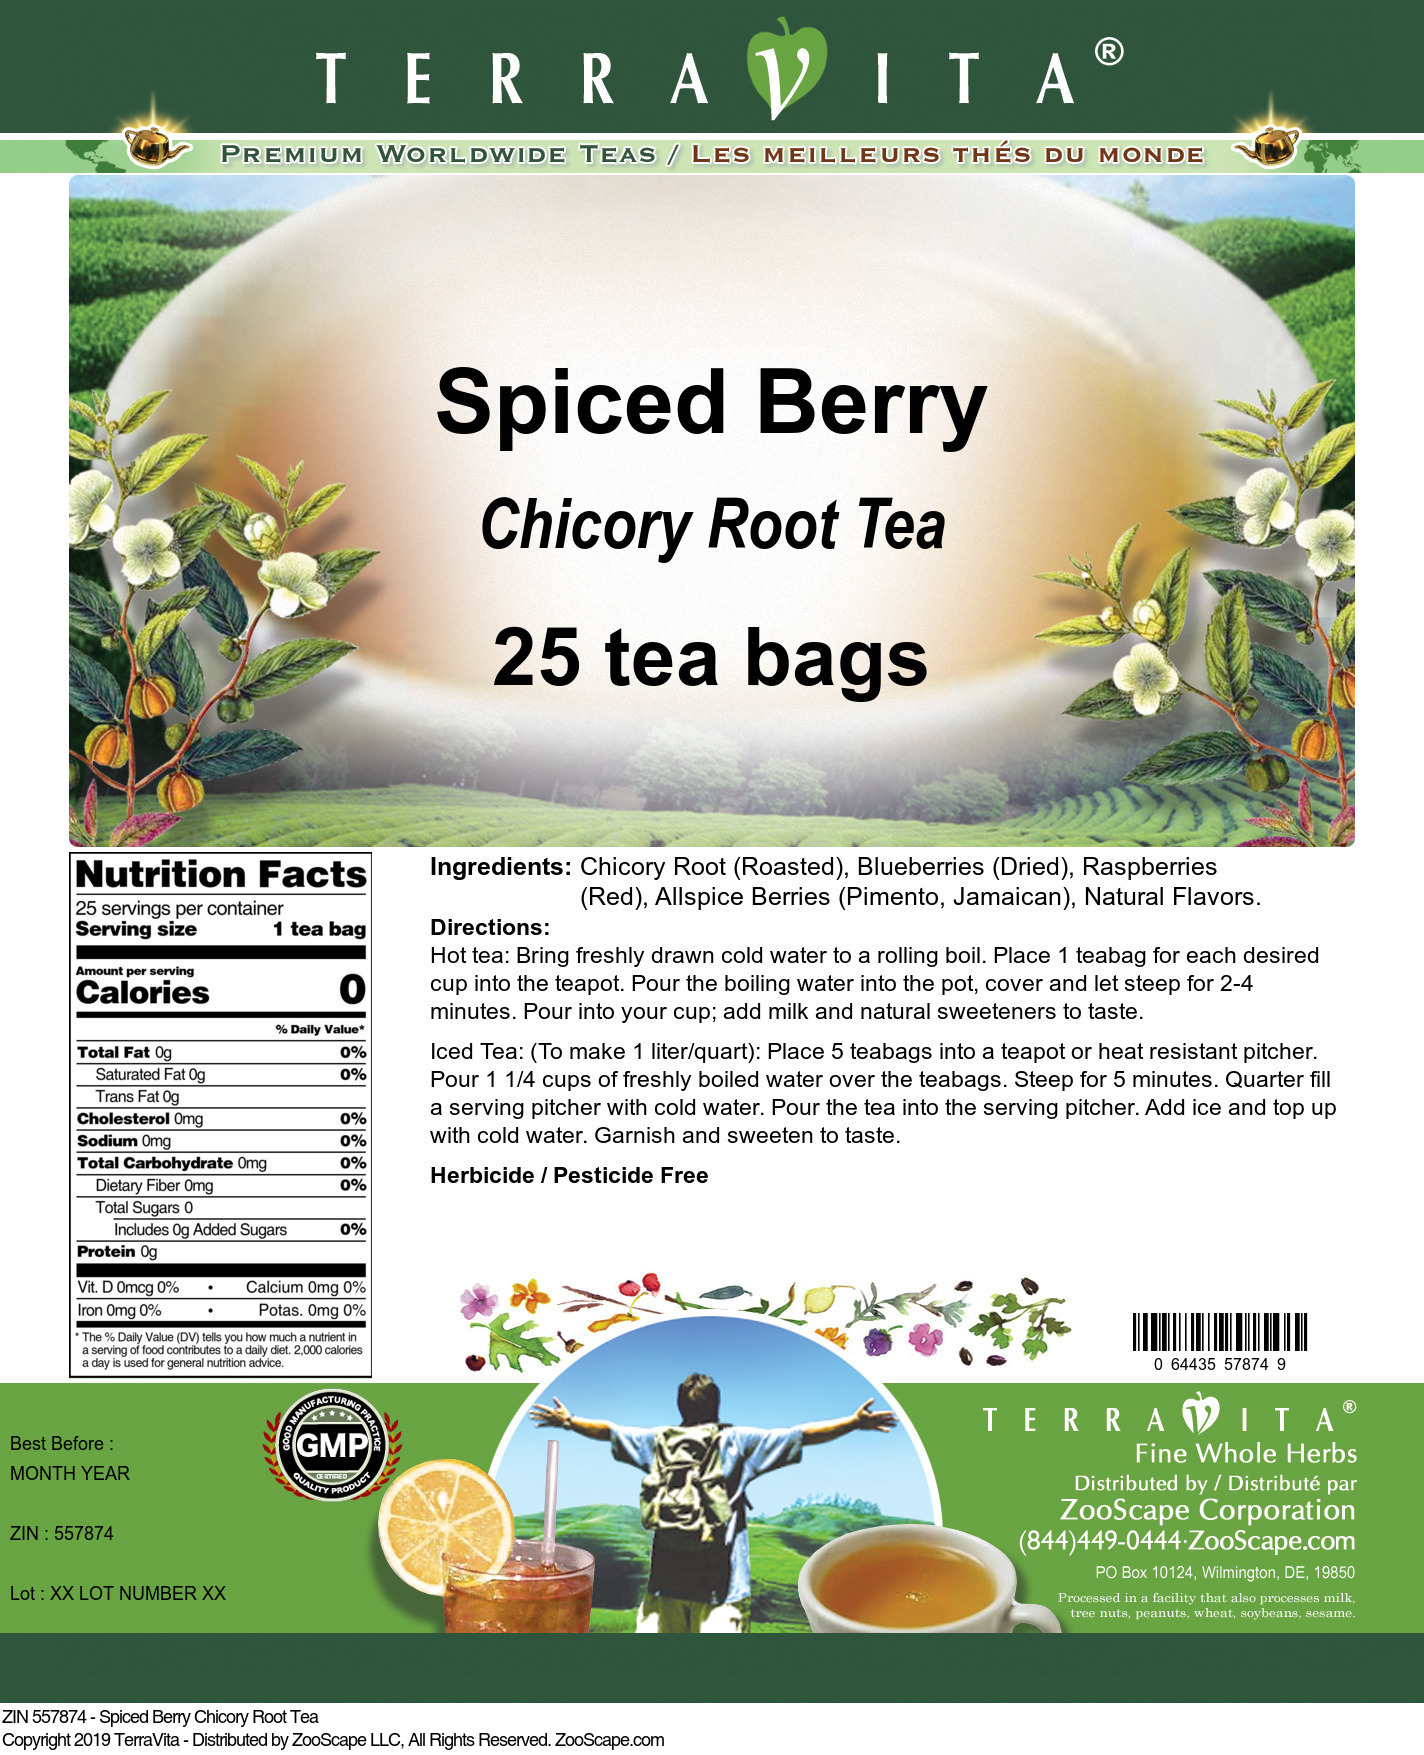 Spiced Berry Chicory Root Tea